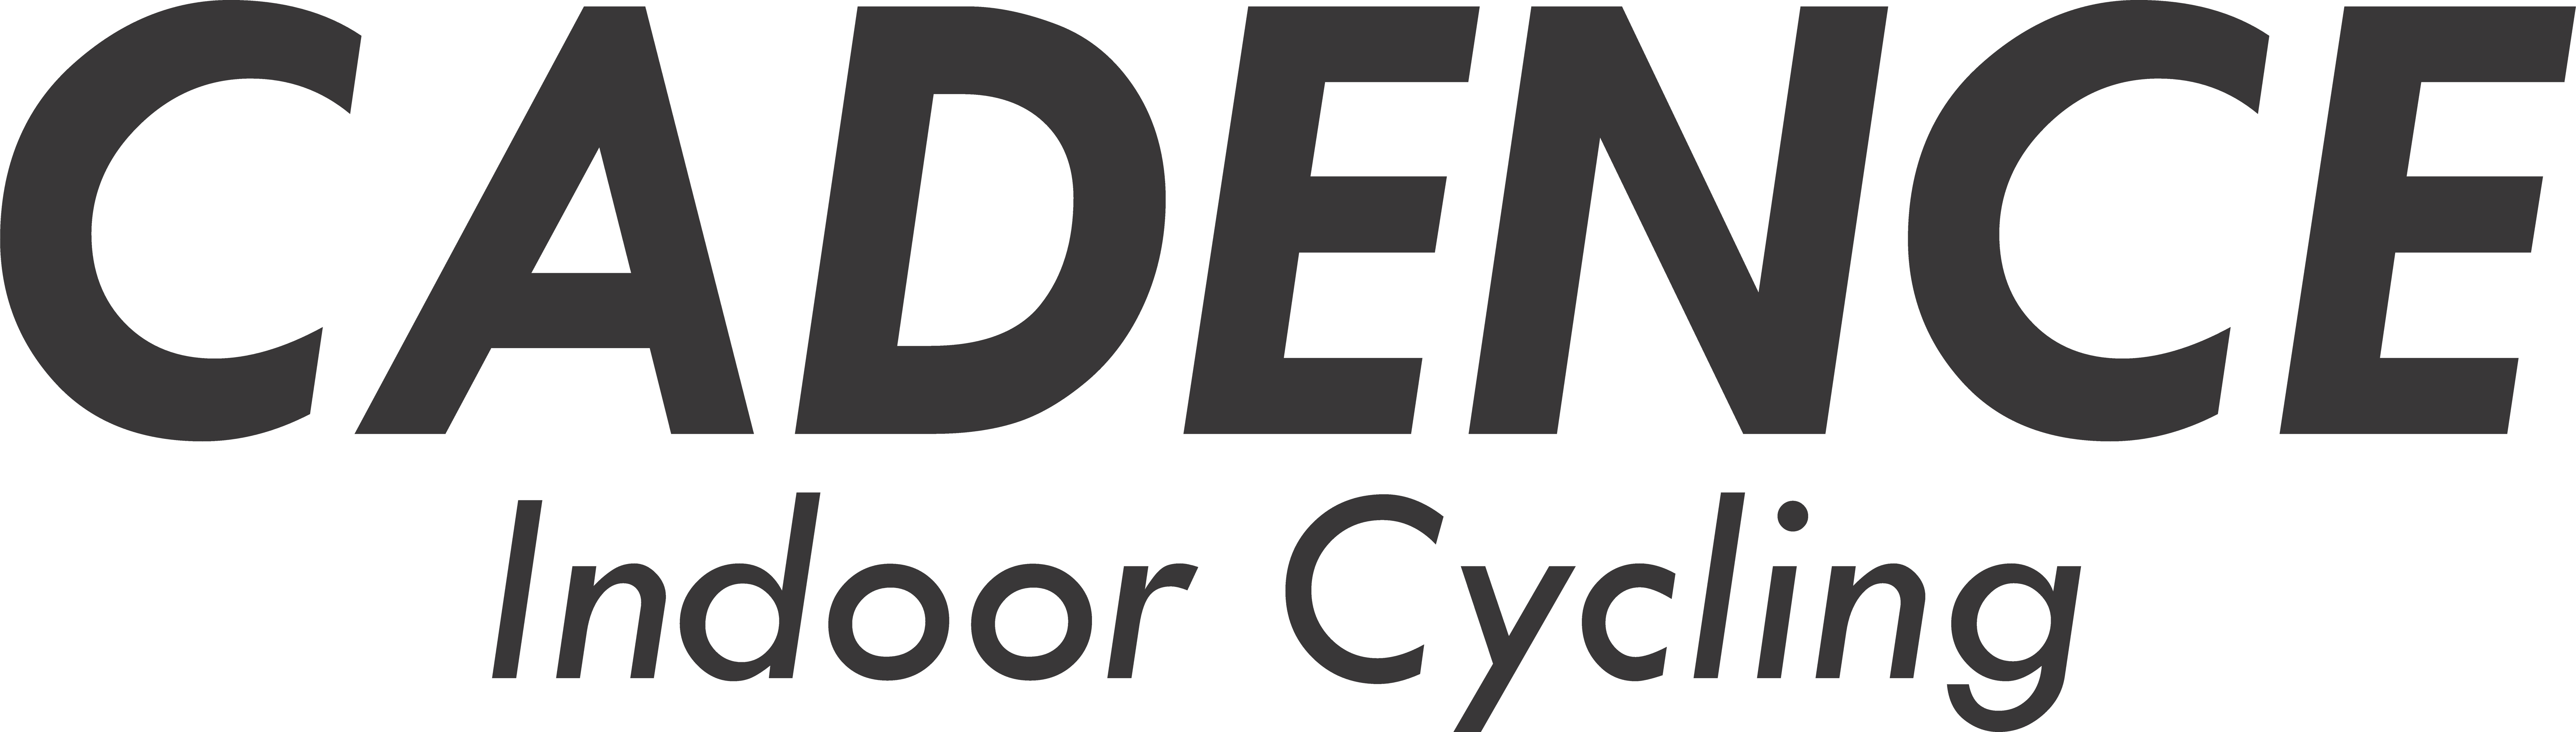 Cadence Indoor Cycling